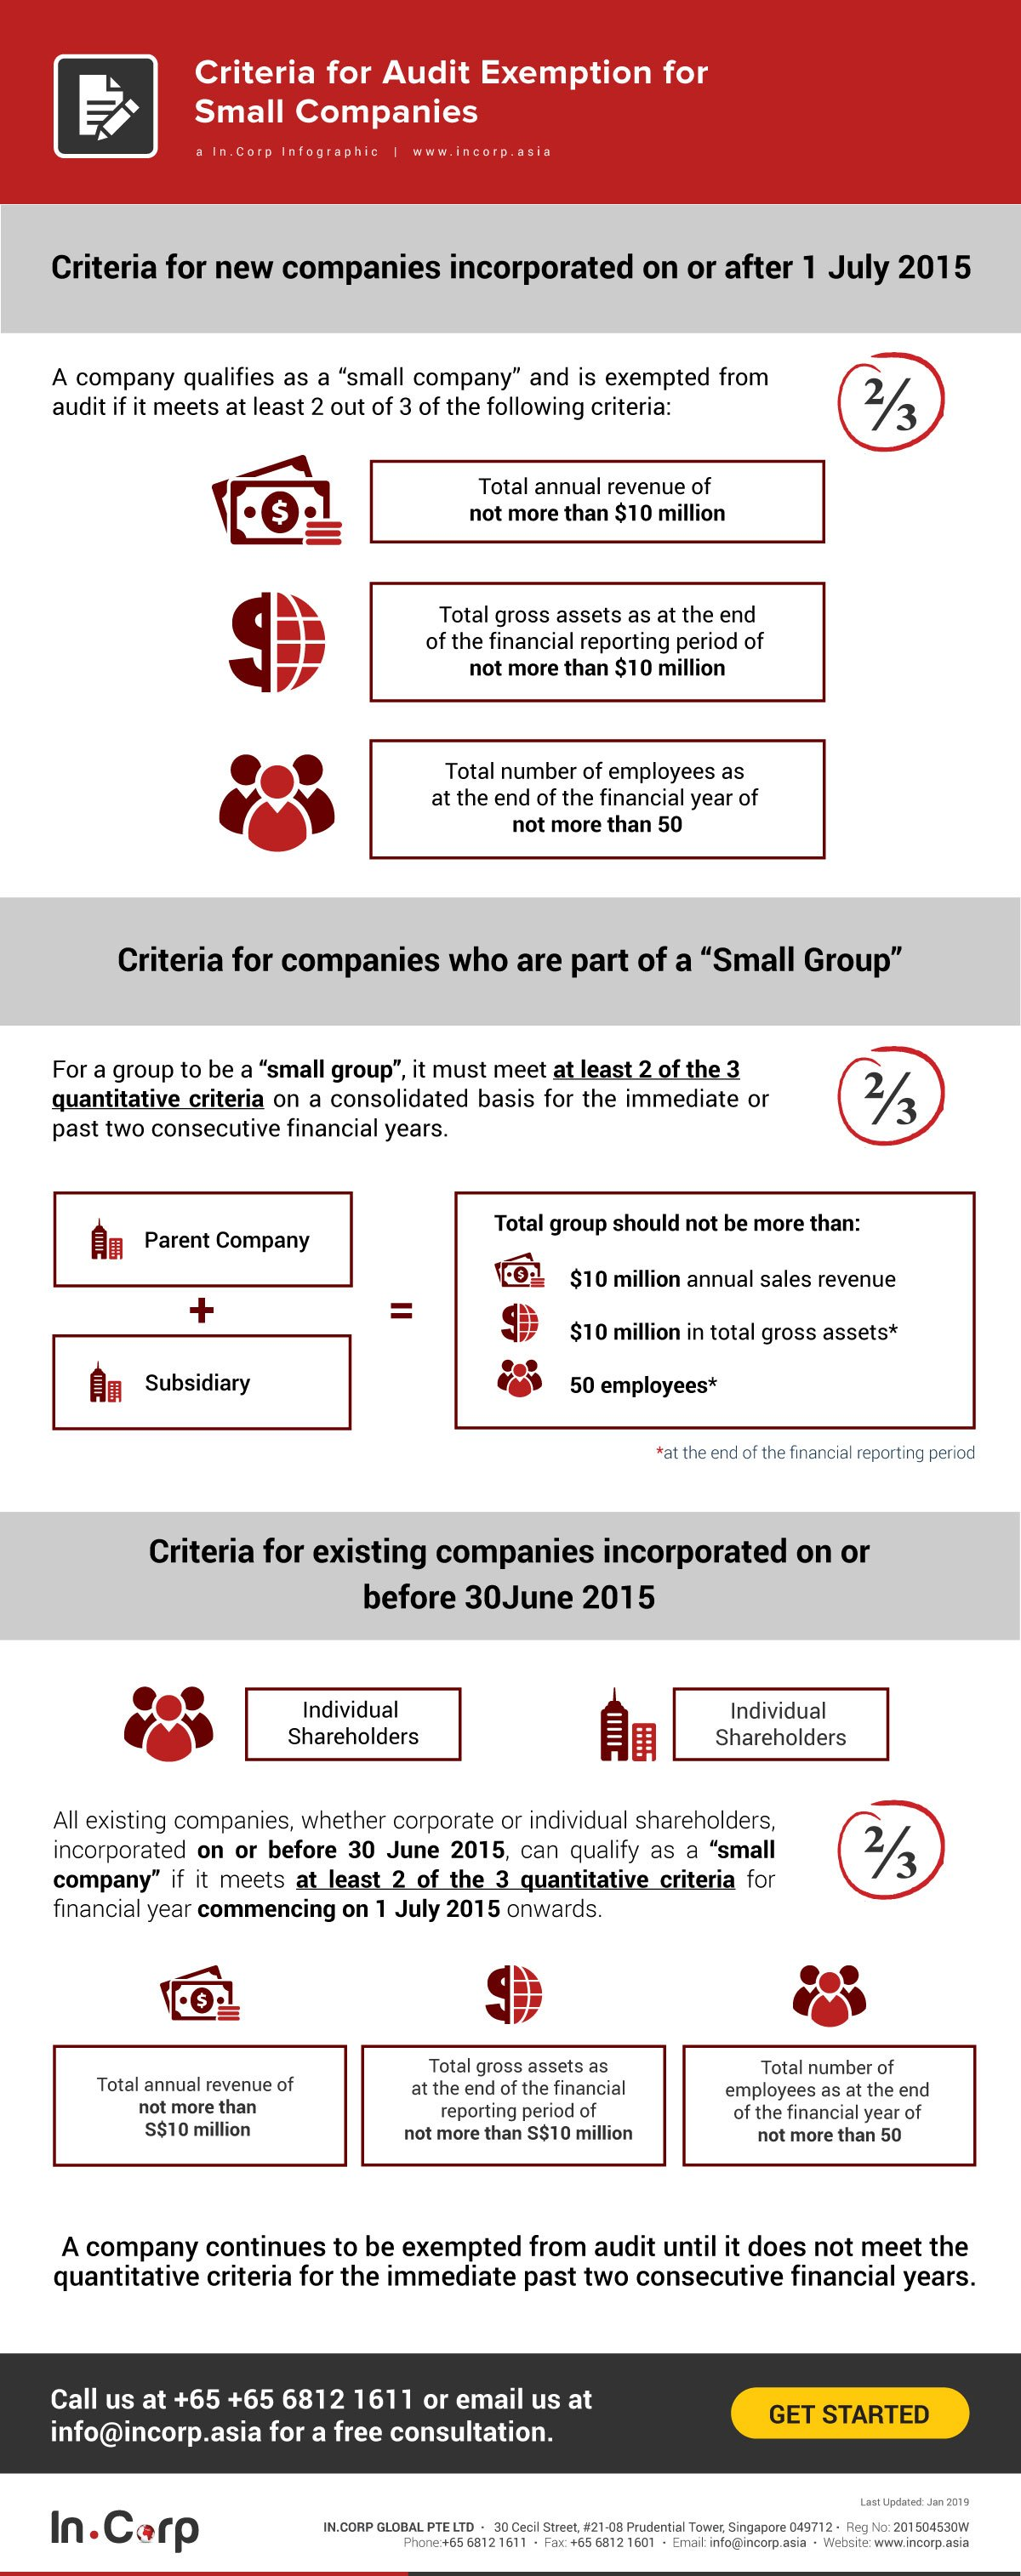 criteria-for-audit-exemption-in-singapore